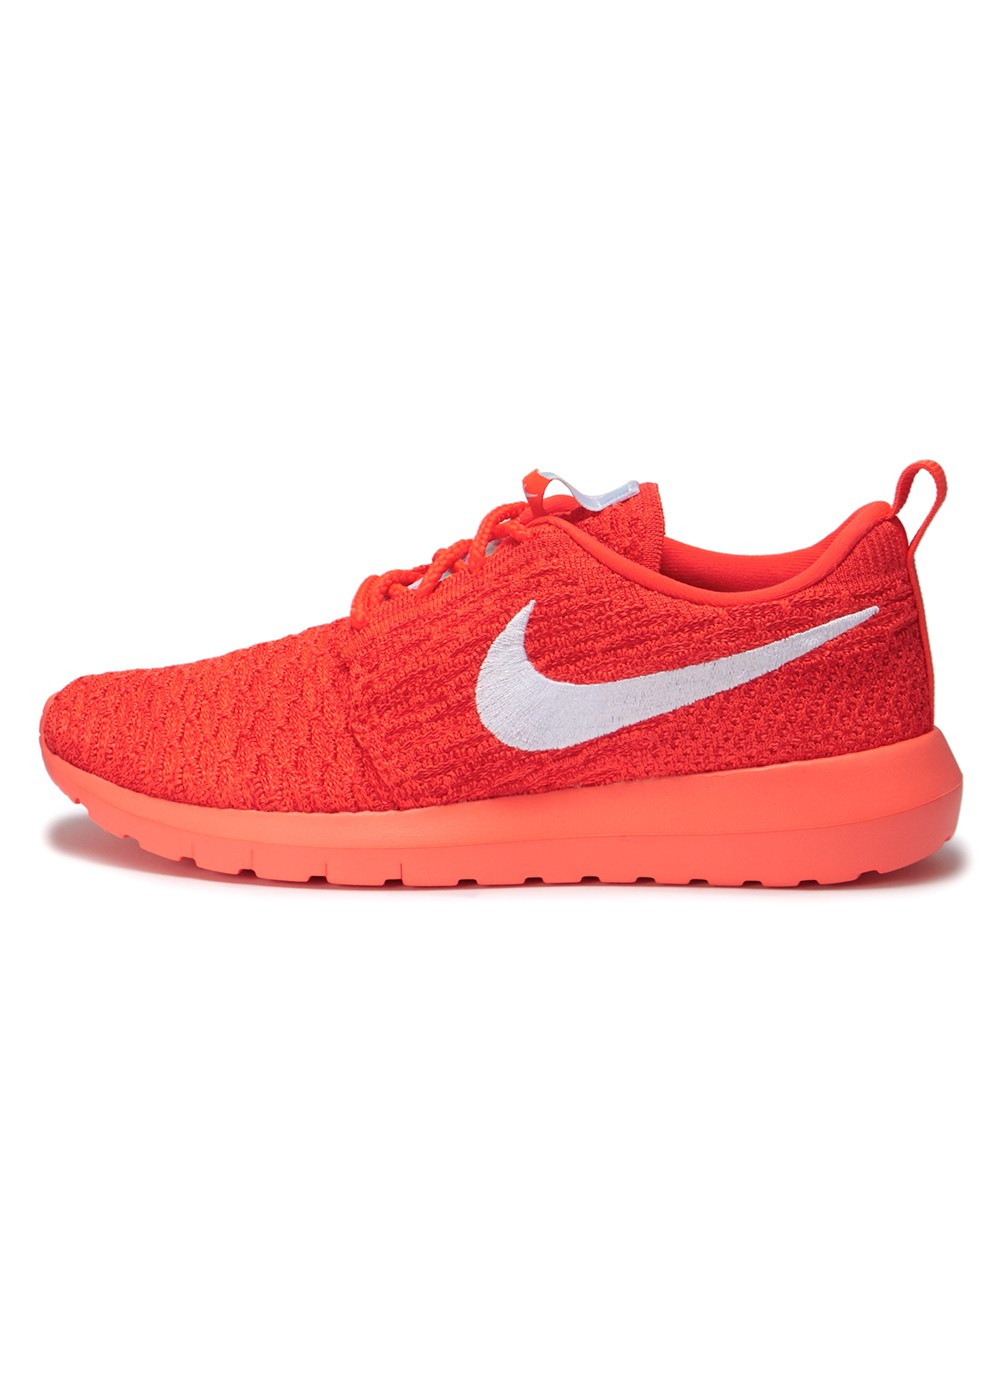 【NIKE】WMNS ROSHE NM FLYKNIT 843386-604|ORANGE|スニーカー|Styles